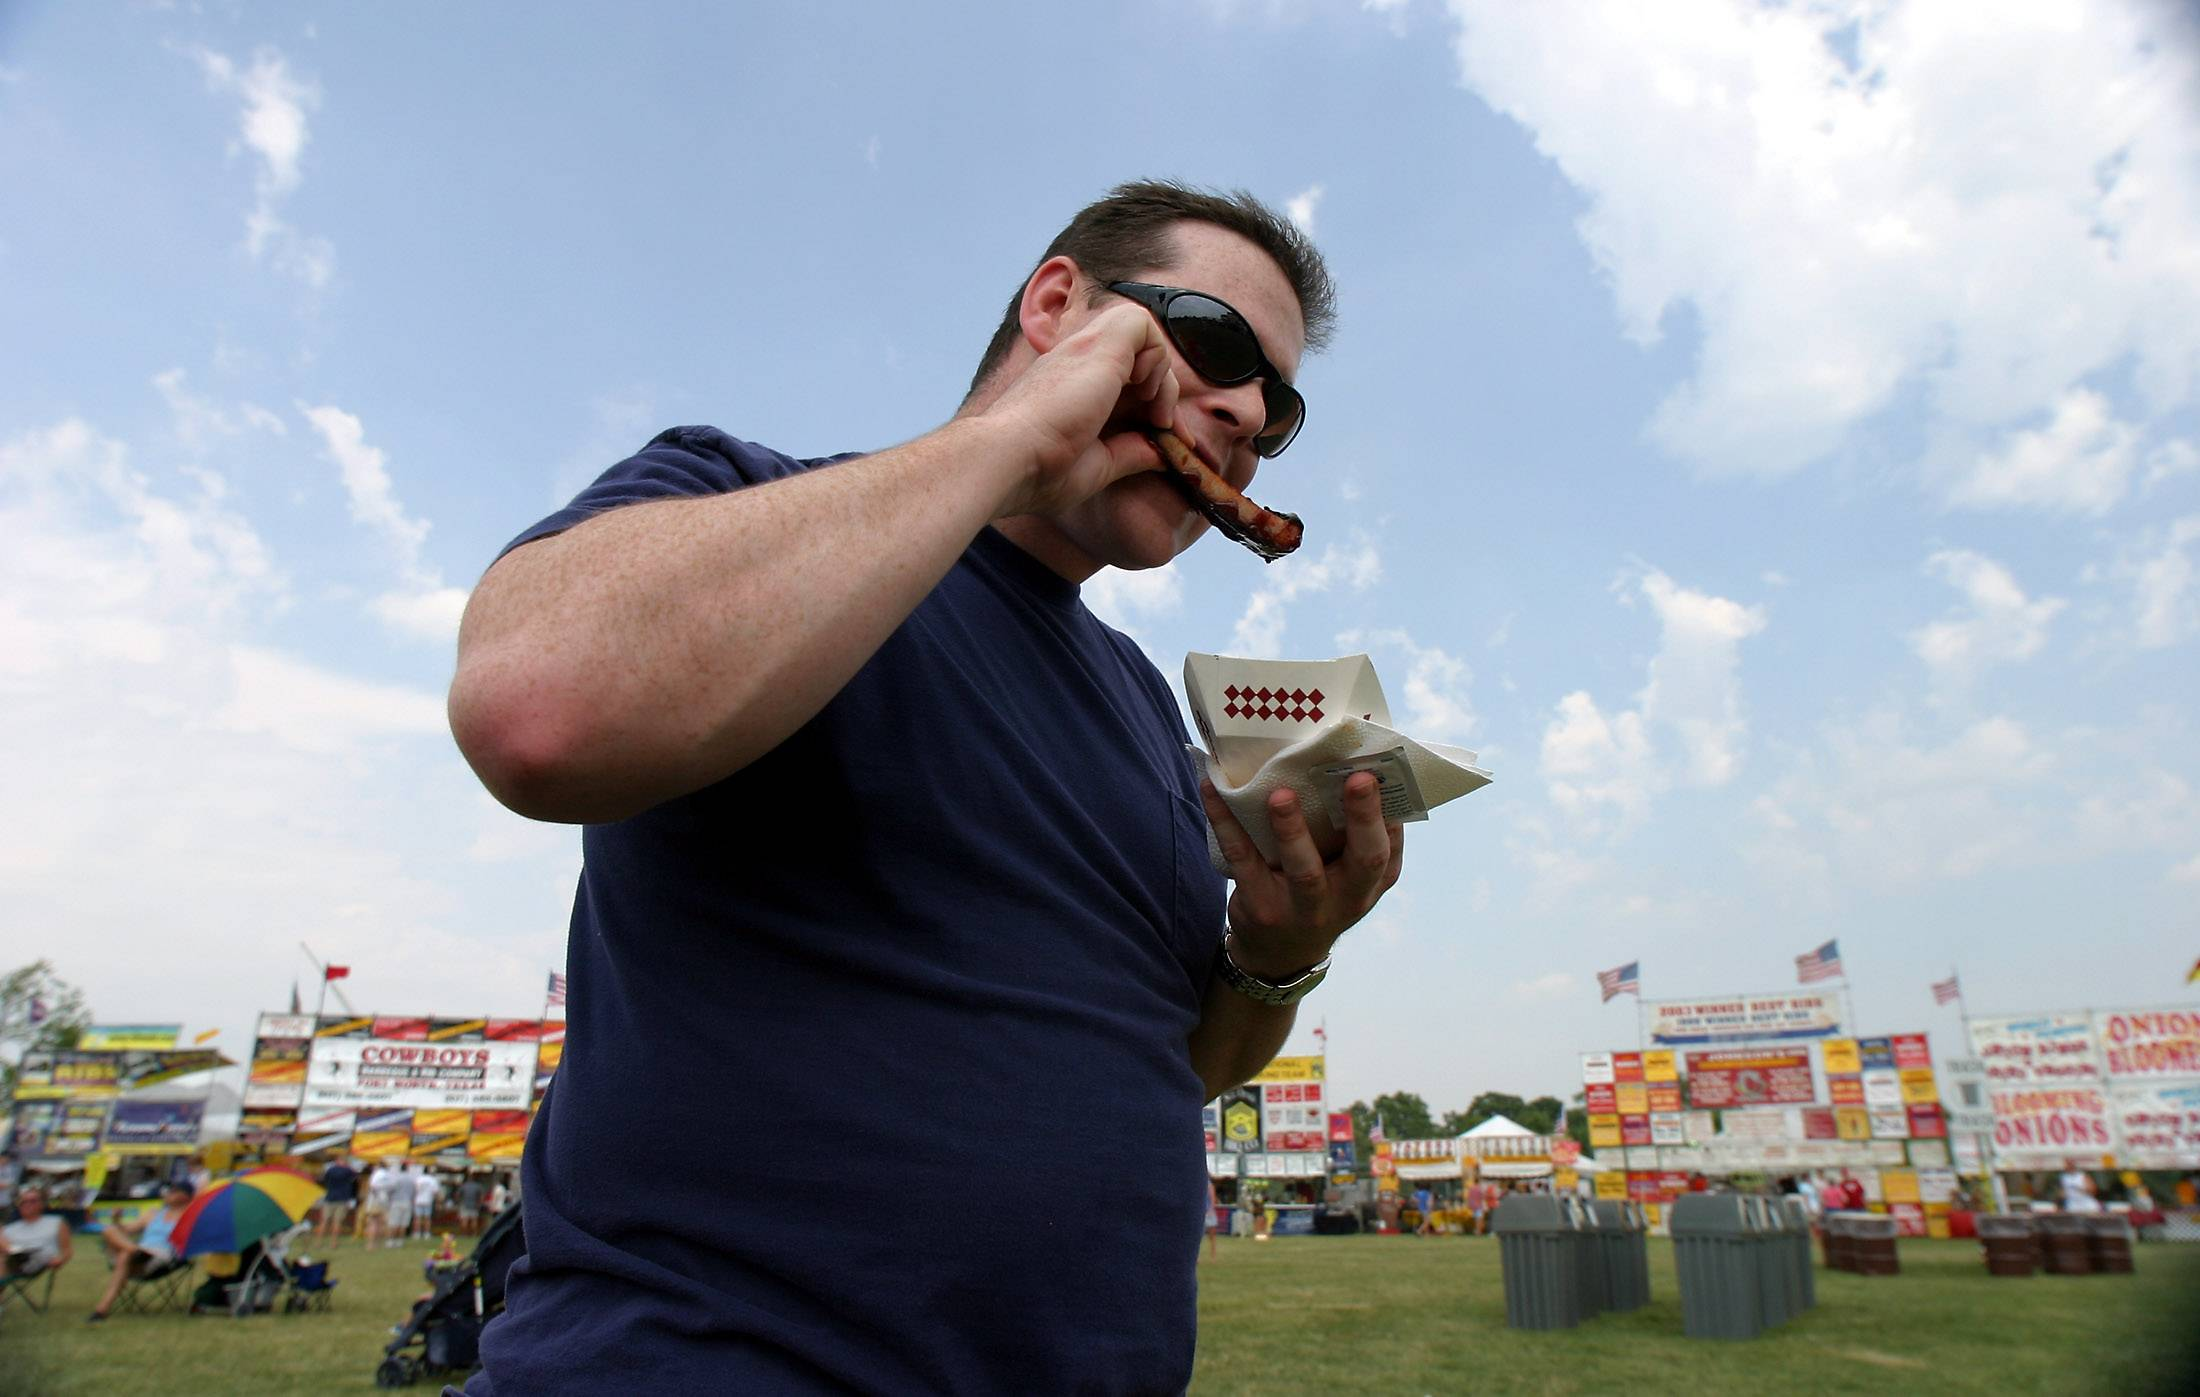 6 tips for a good time at Naperville's Ribfest